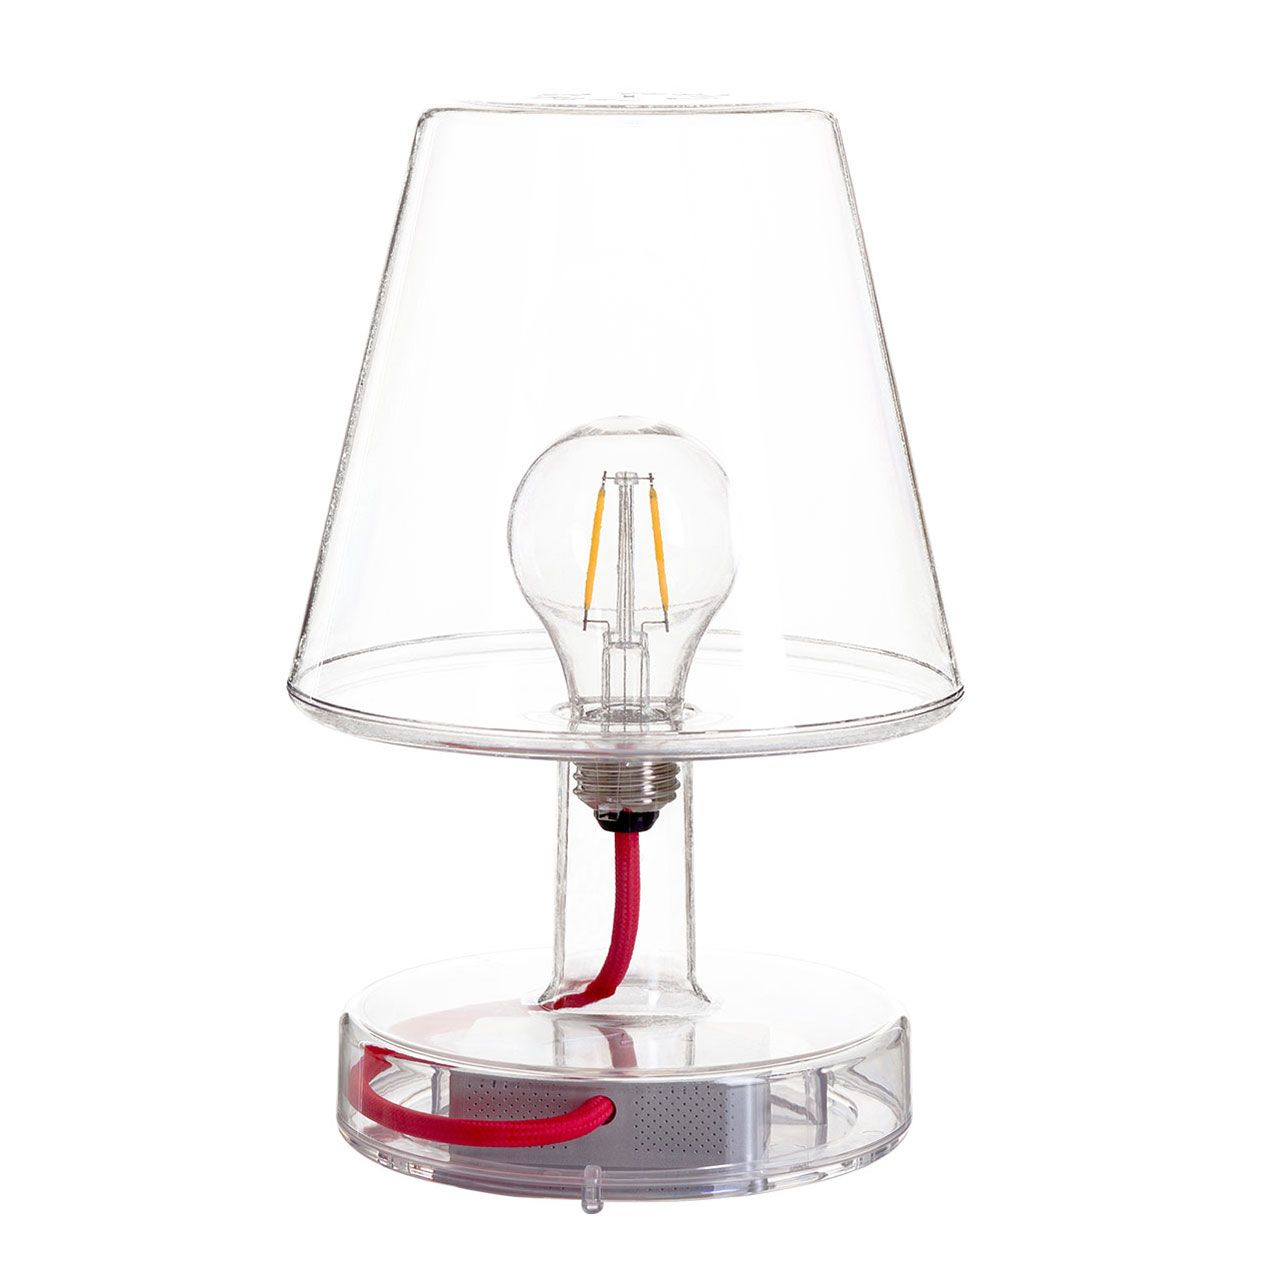 The Fatboy Transloetje Is A Designer Table Lamp With A Subtle Operation And Decorative Character Choose Your Favourite Col Lamp Portable Led Lights Table Lamp